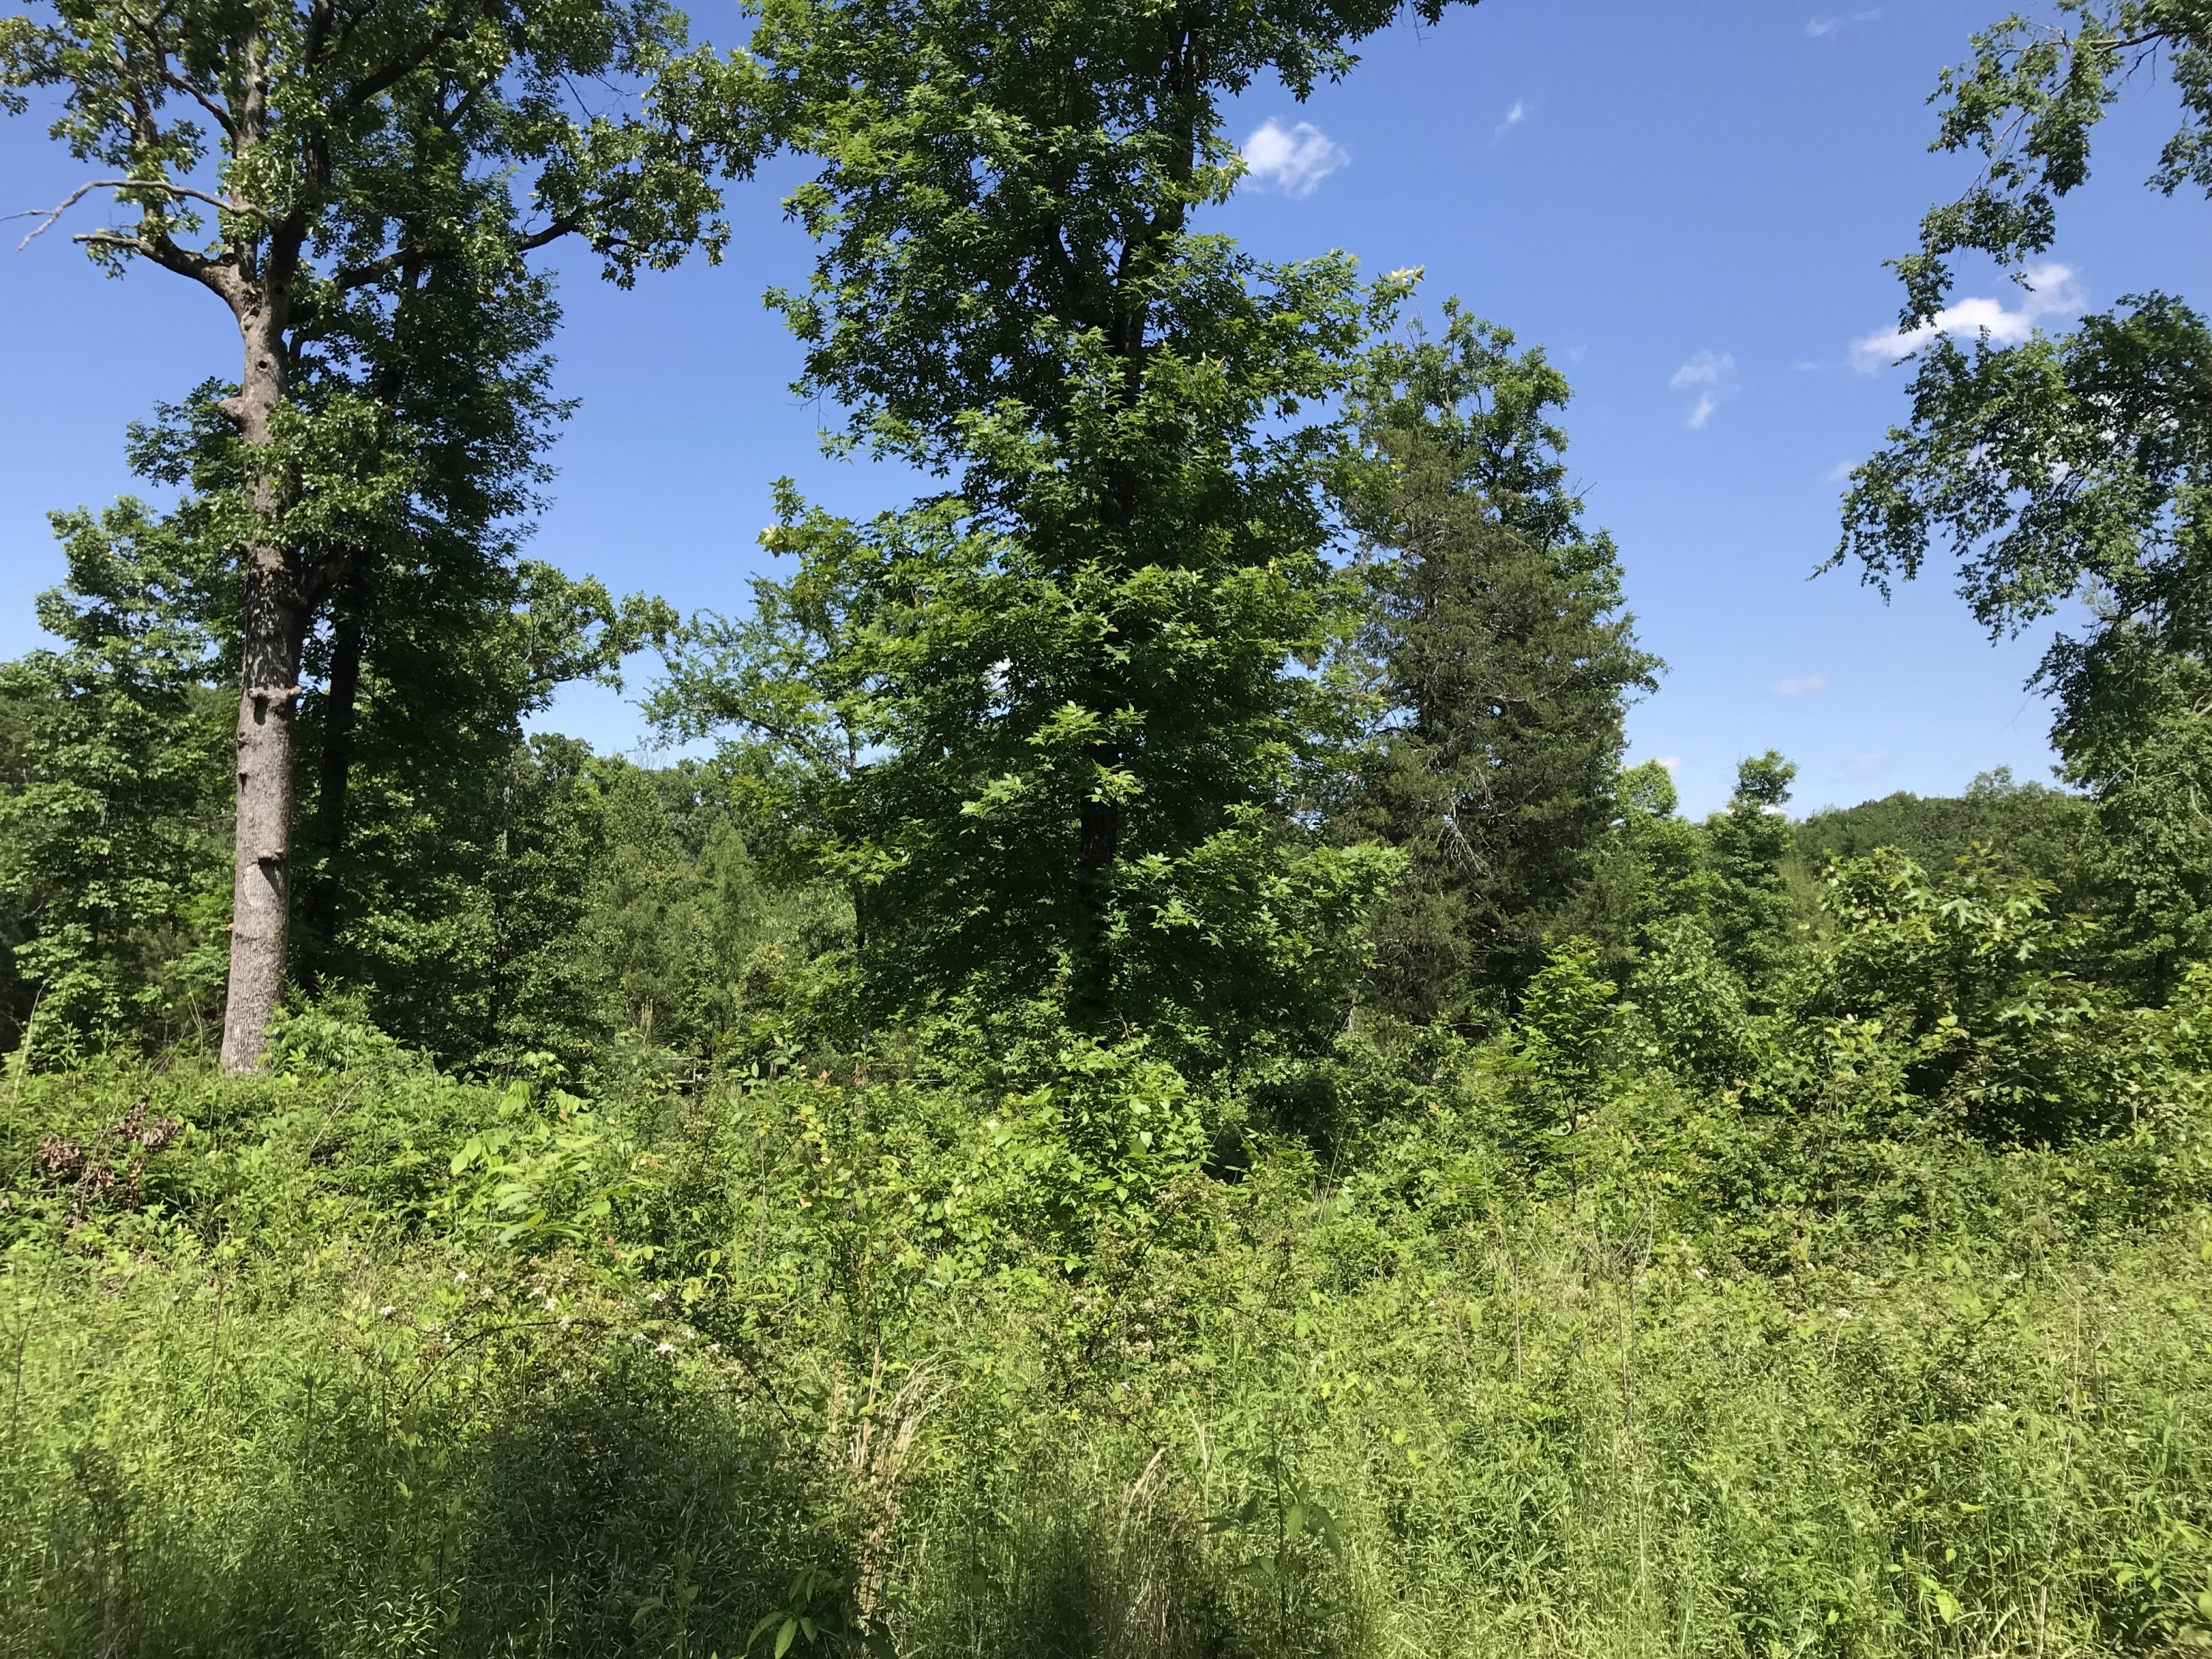 Large photo 2 of land for sale at  Cloverleaf Loop , Dardanelle, AR, listed by The Realty Place, Inc.